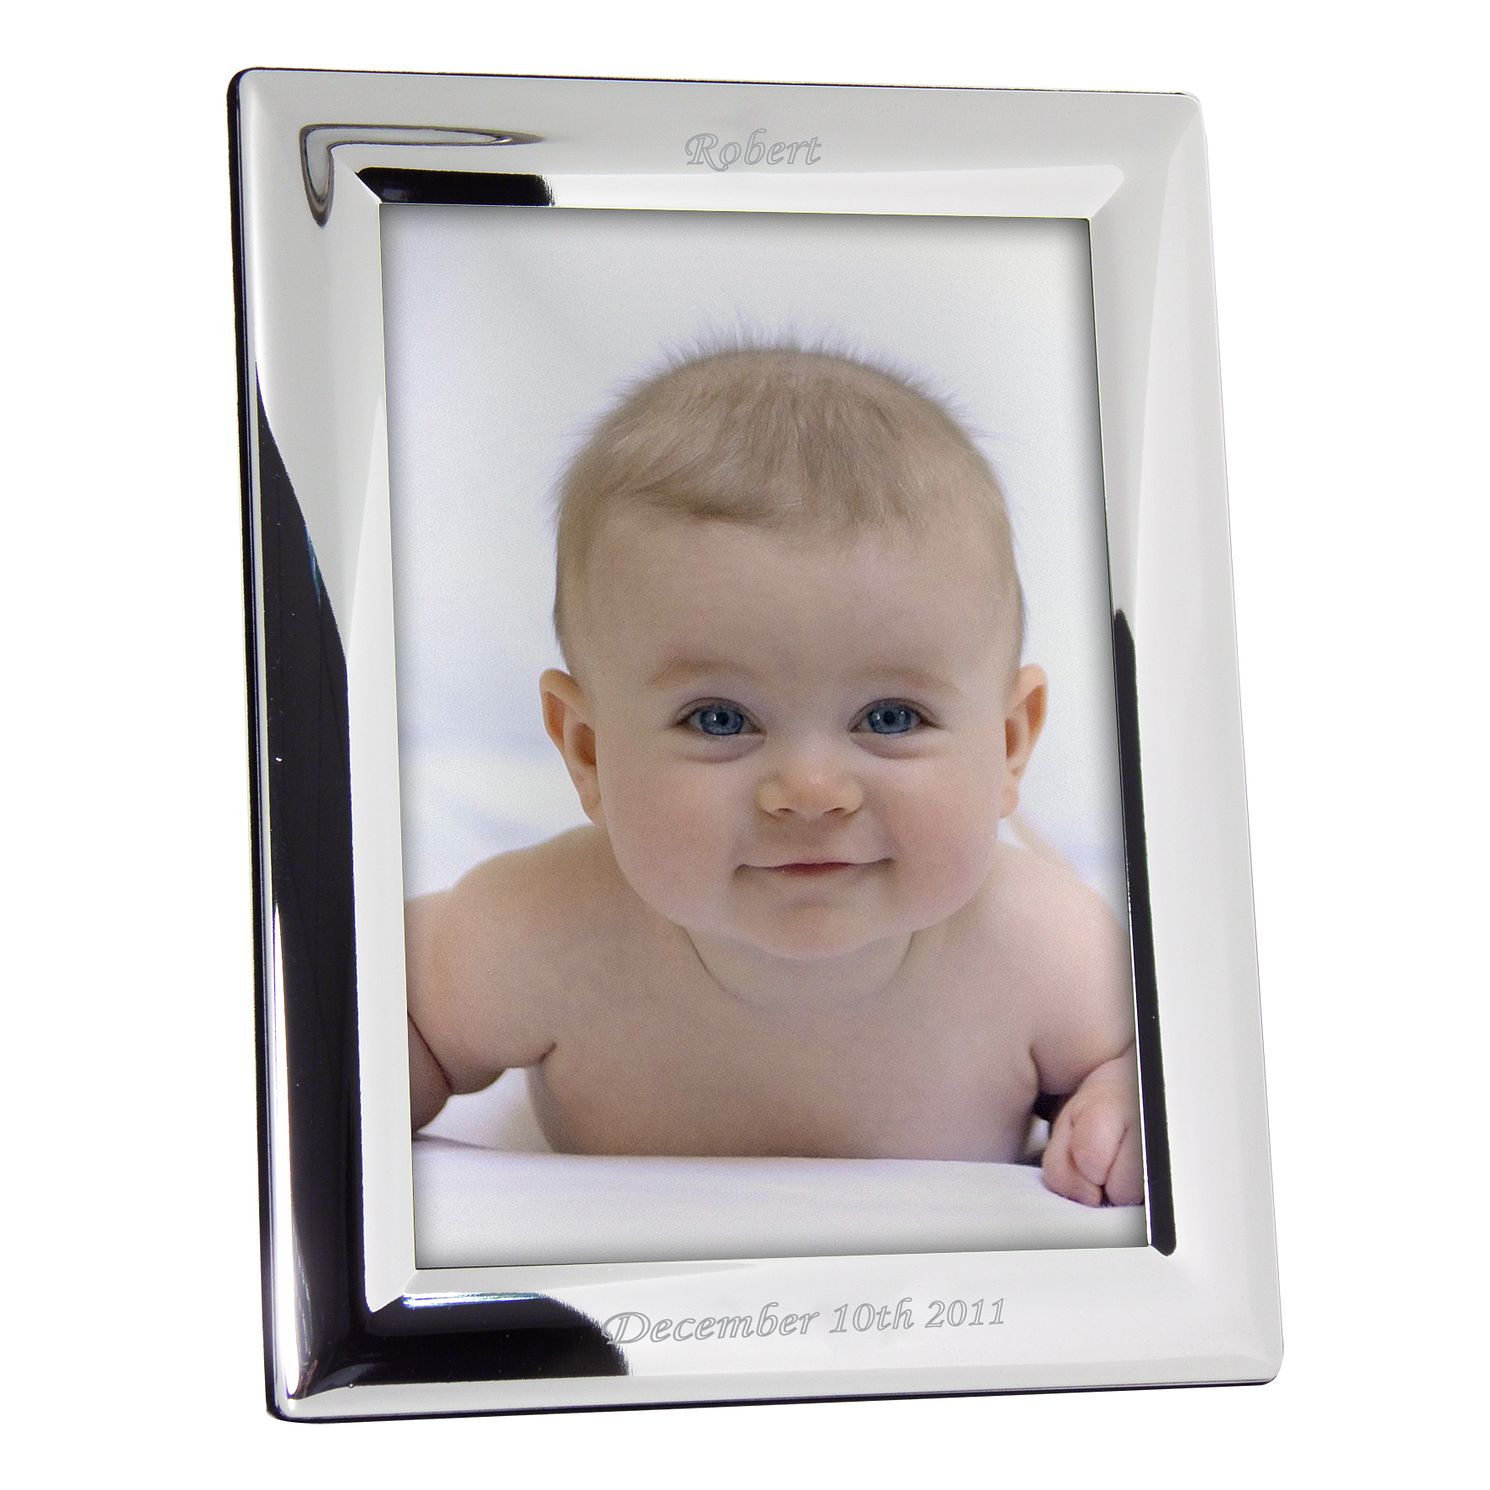 Engraved Silver 5x7 Portrait Photograph Frame - Product number 1441965